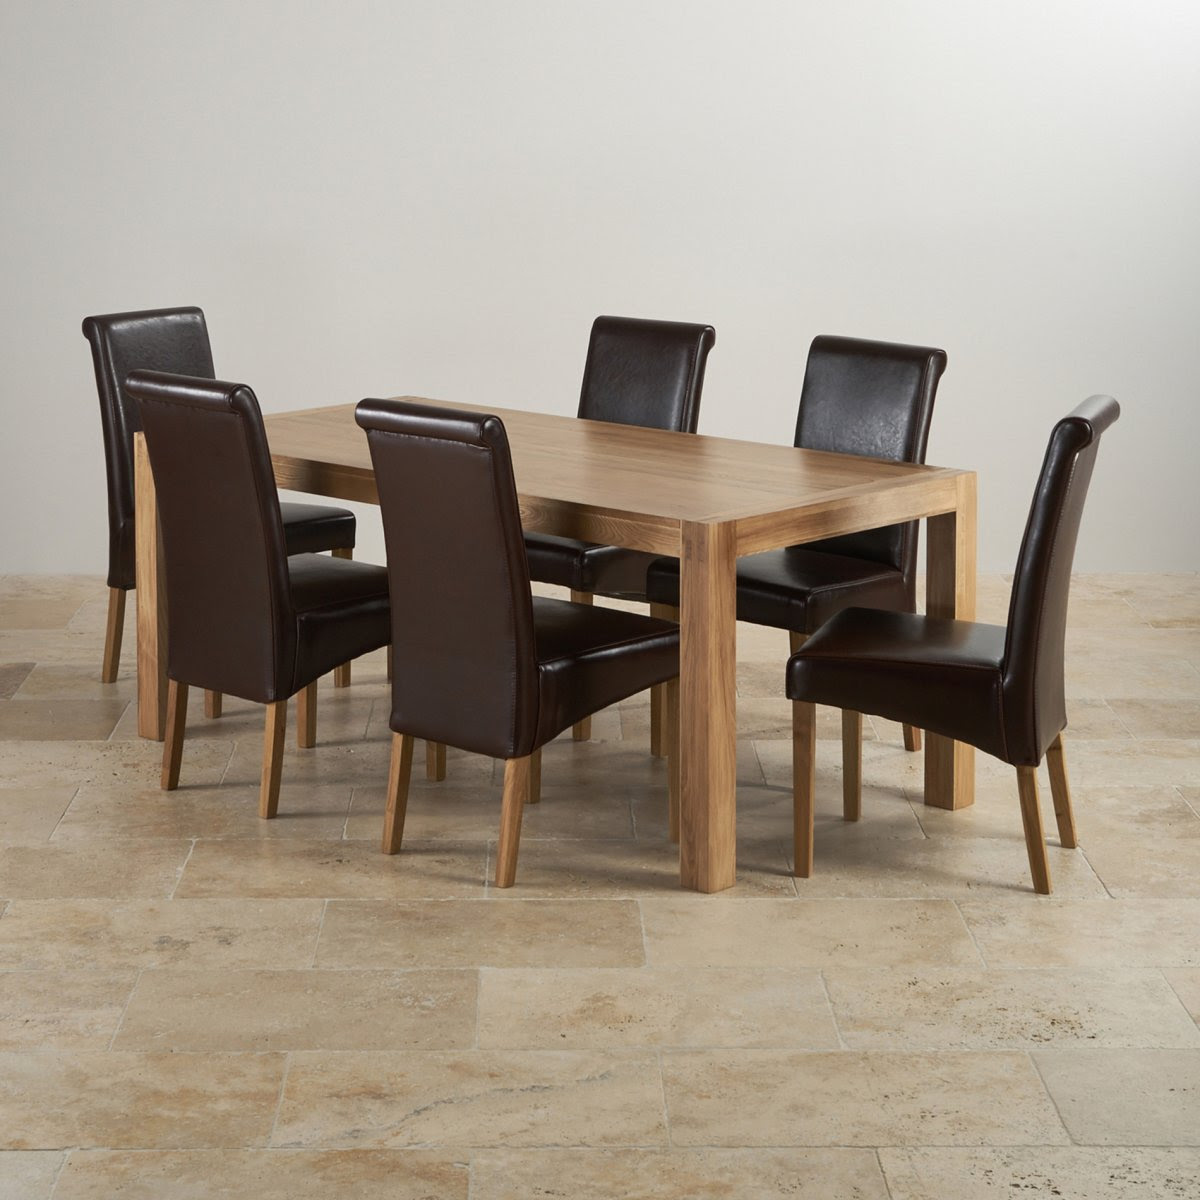 Alto Dining Set in Oak: Dining Table + 6 Brown Leather Chairs